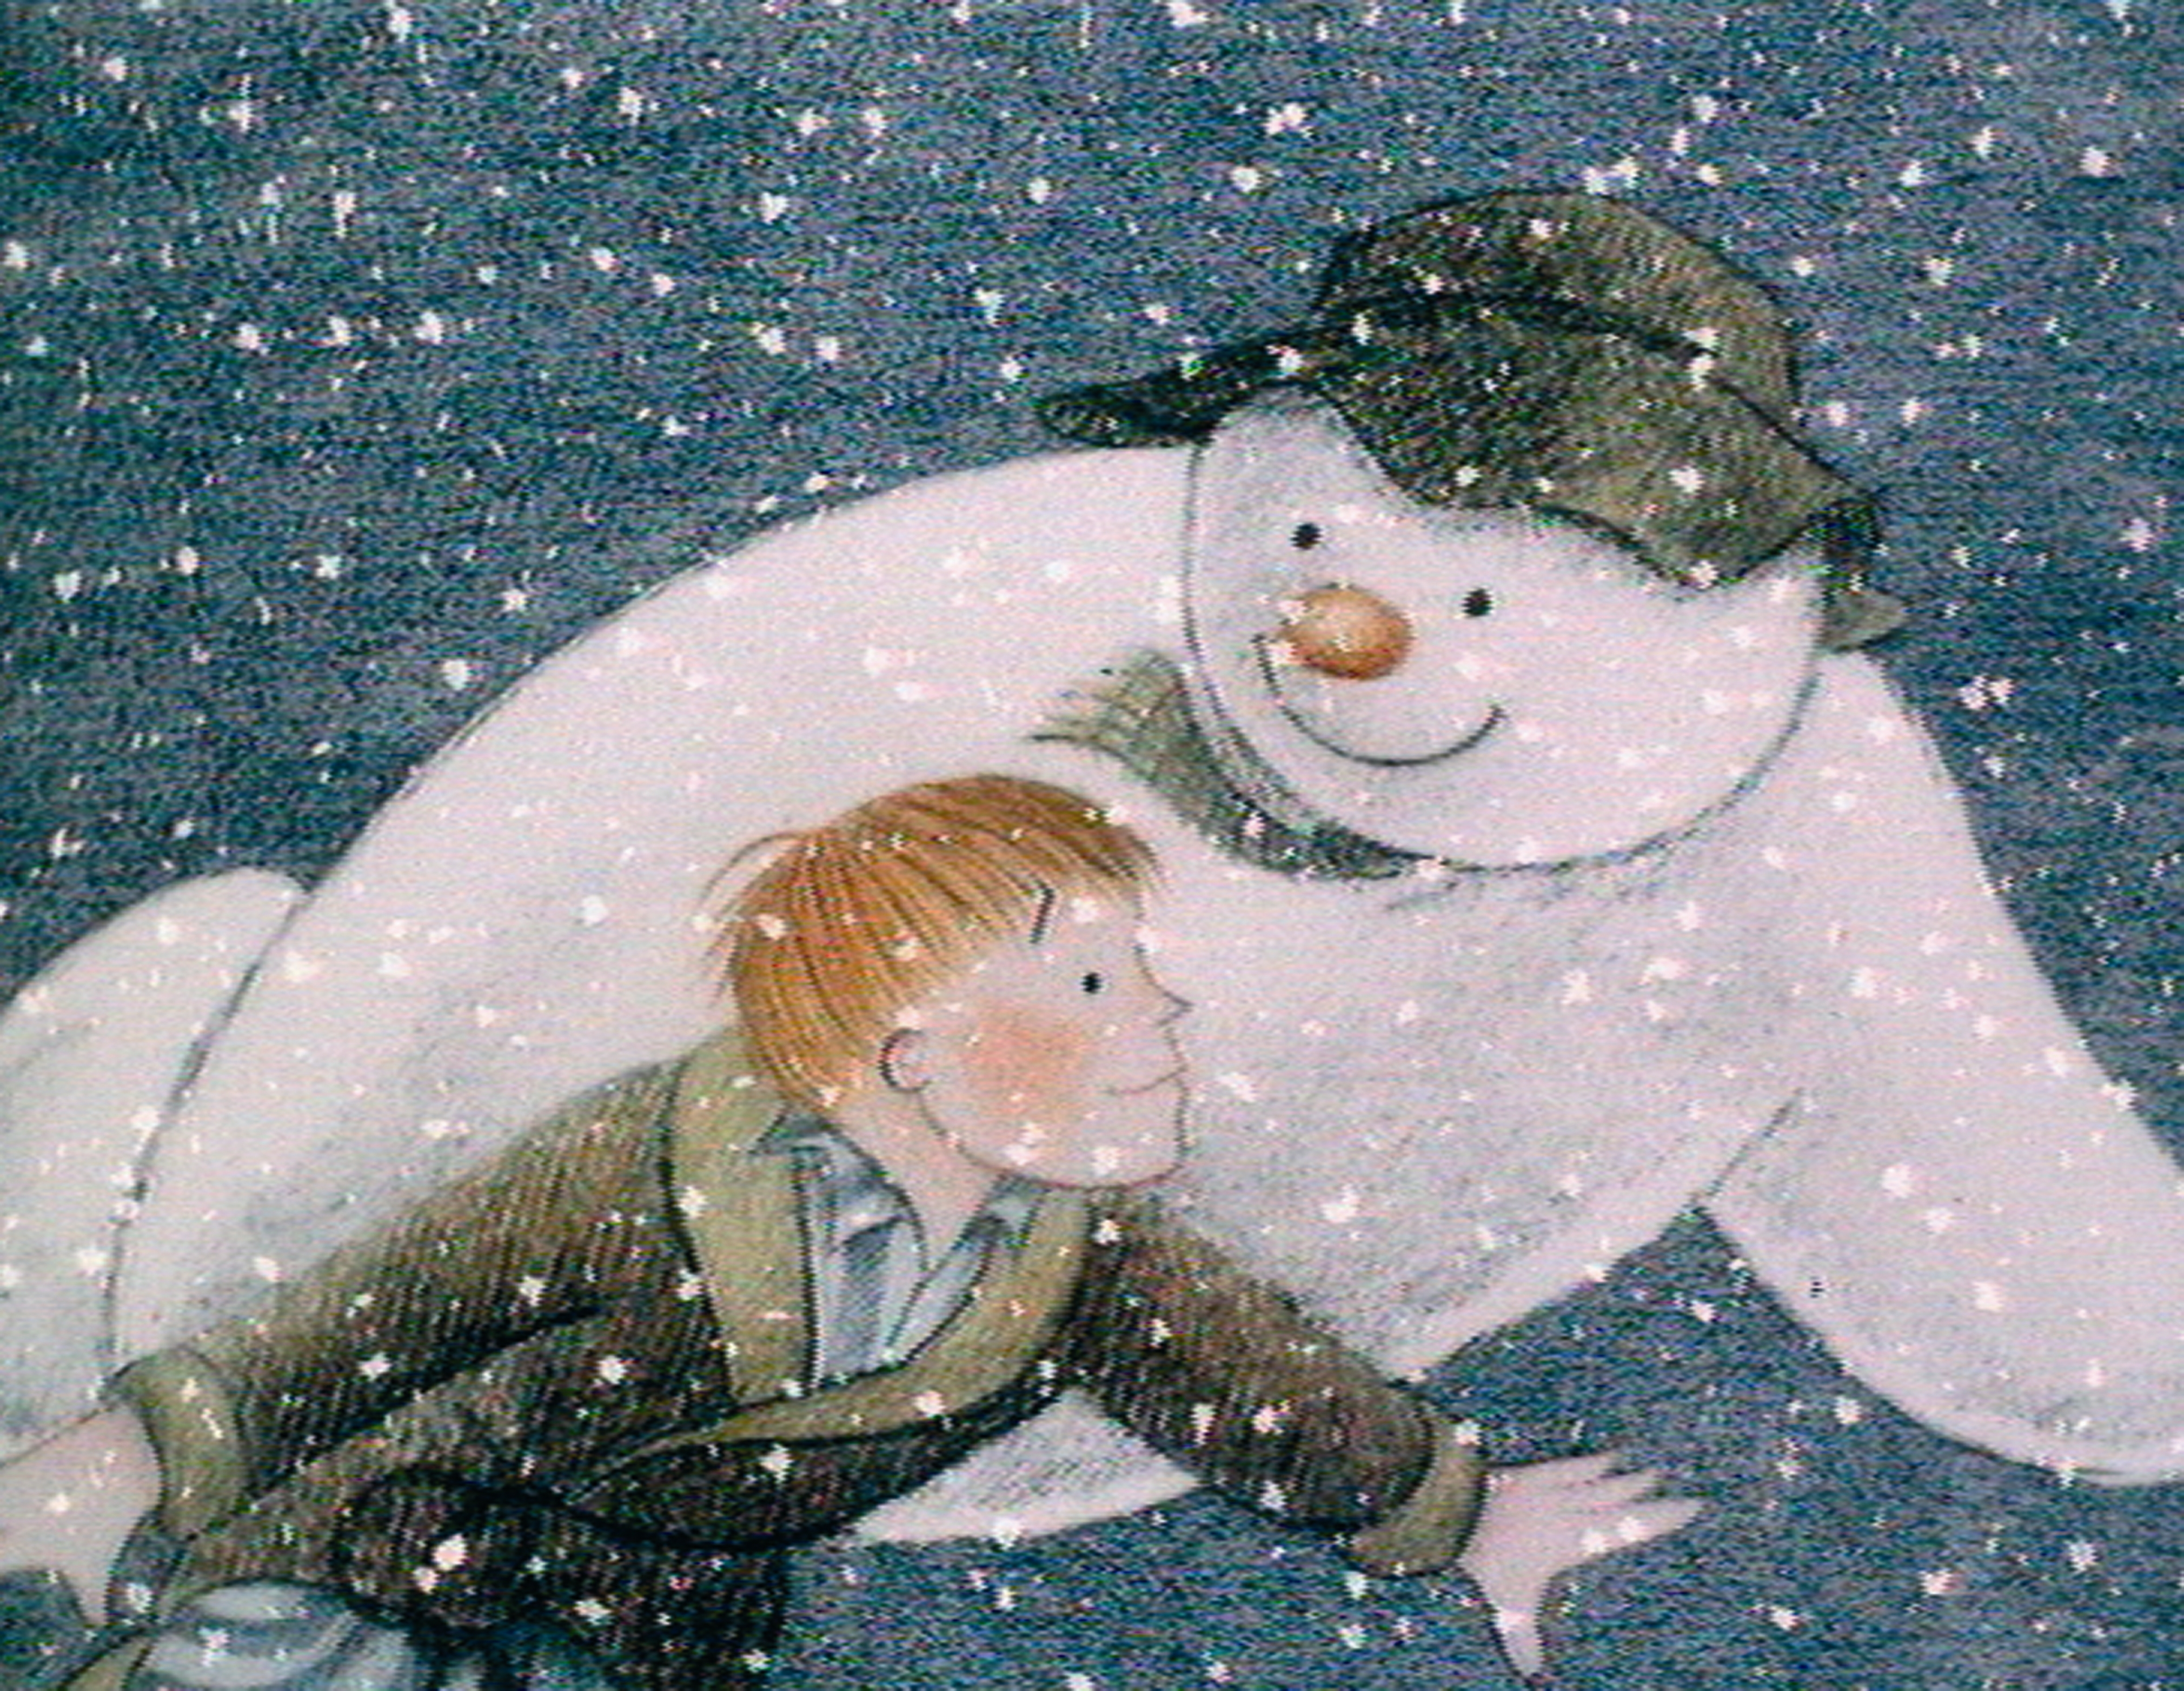 Arguably the most cherished soundtrack to the Christmas season is the score to Raymond Briggs' The Snowman. Plus the classic rags-to-riches tale of Cinderella with sensational music and illustrations to accompany the story.